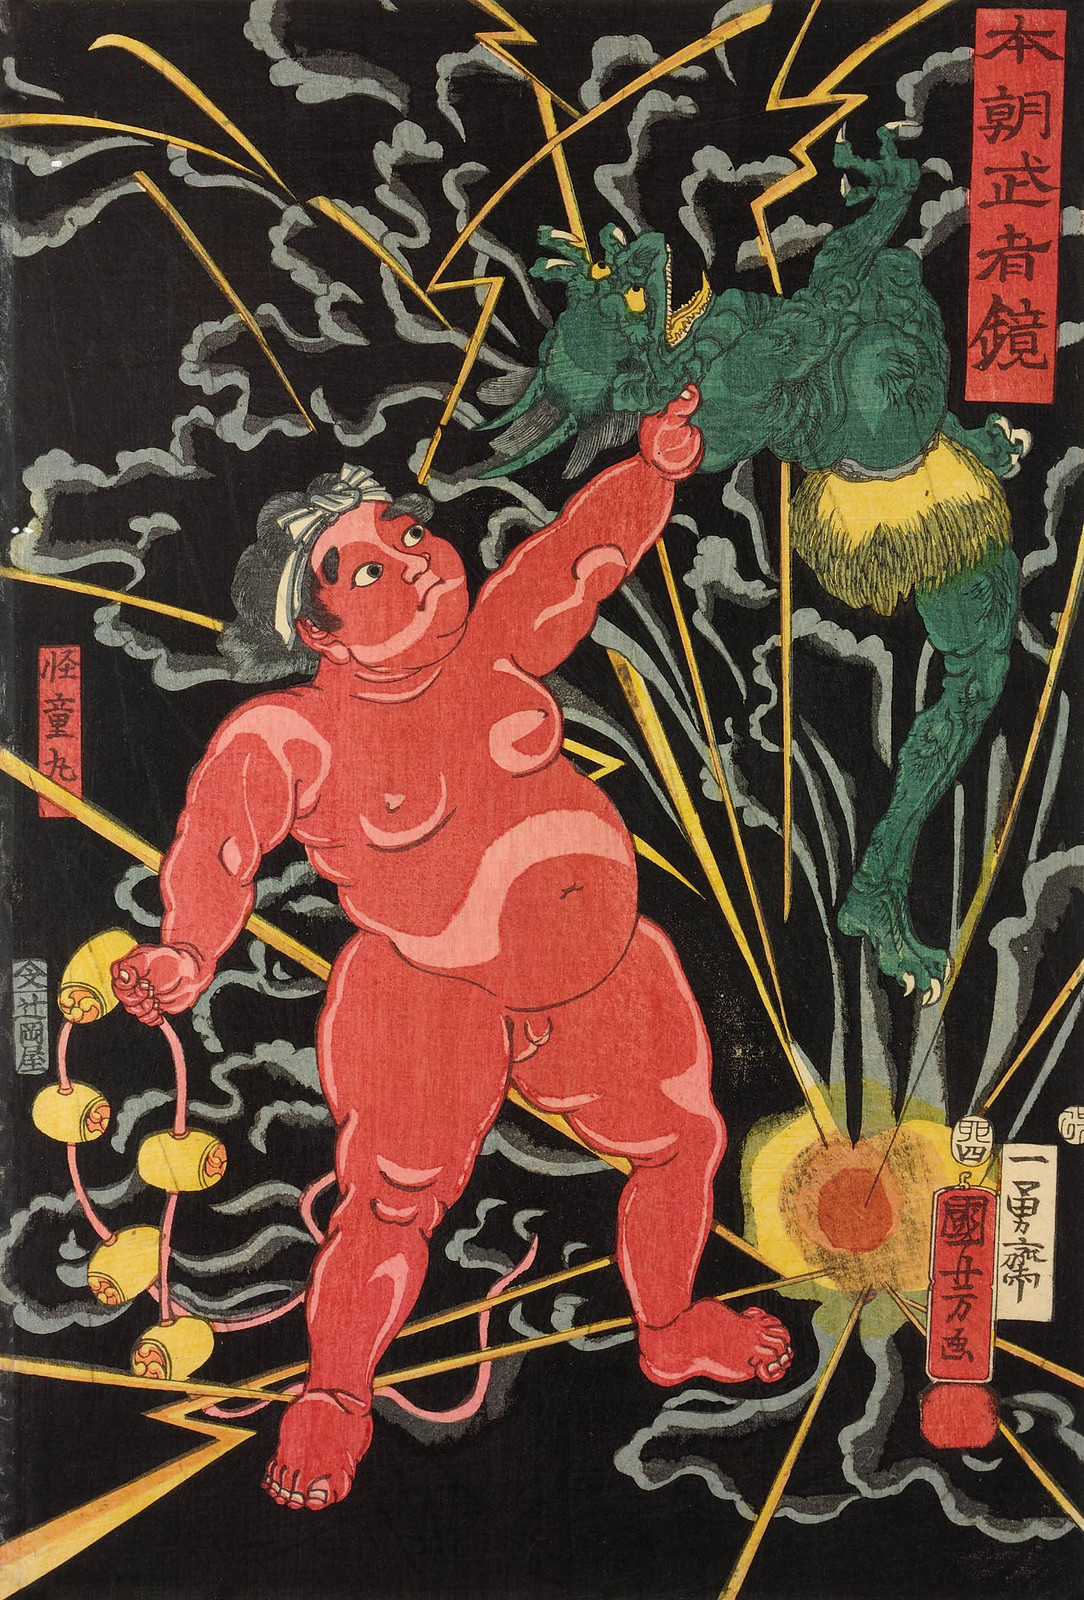 Utagawa Kuniyoshi - Honcho musha kagami (Mirror of Warriors of Our Country) Kintaro seizing Raijin the thundergod, 1855